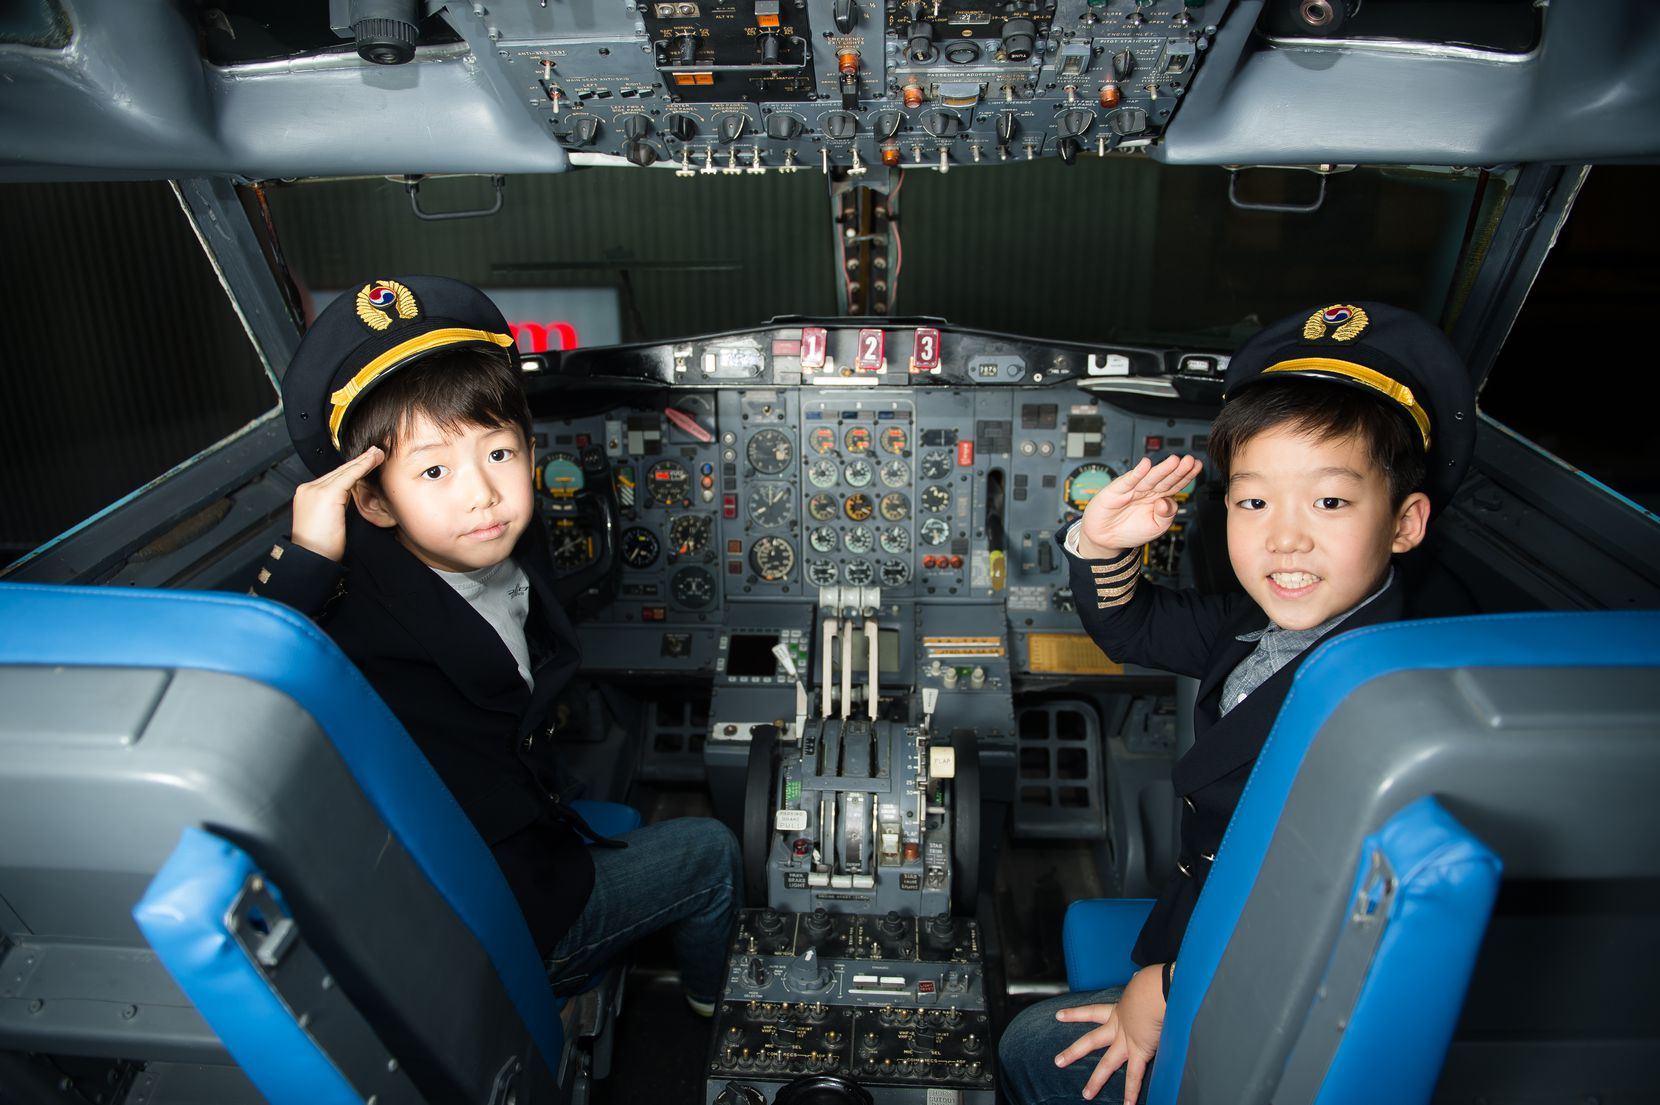 Kids can test their skills in the cockpit of a flight simulator at KidZania, which will be opening a location in Frisco next year.